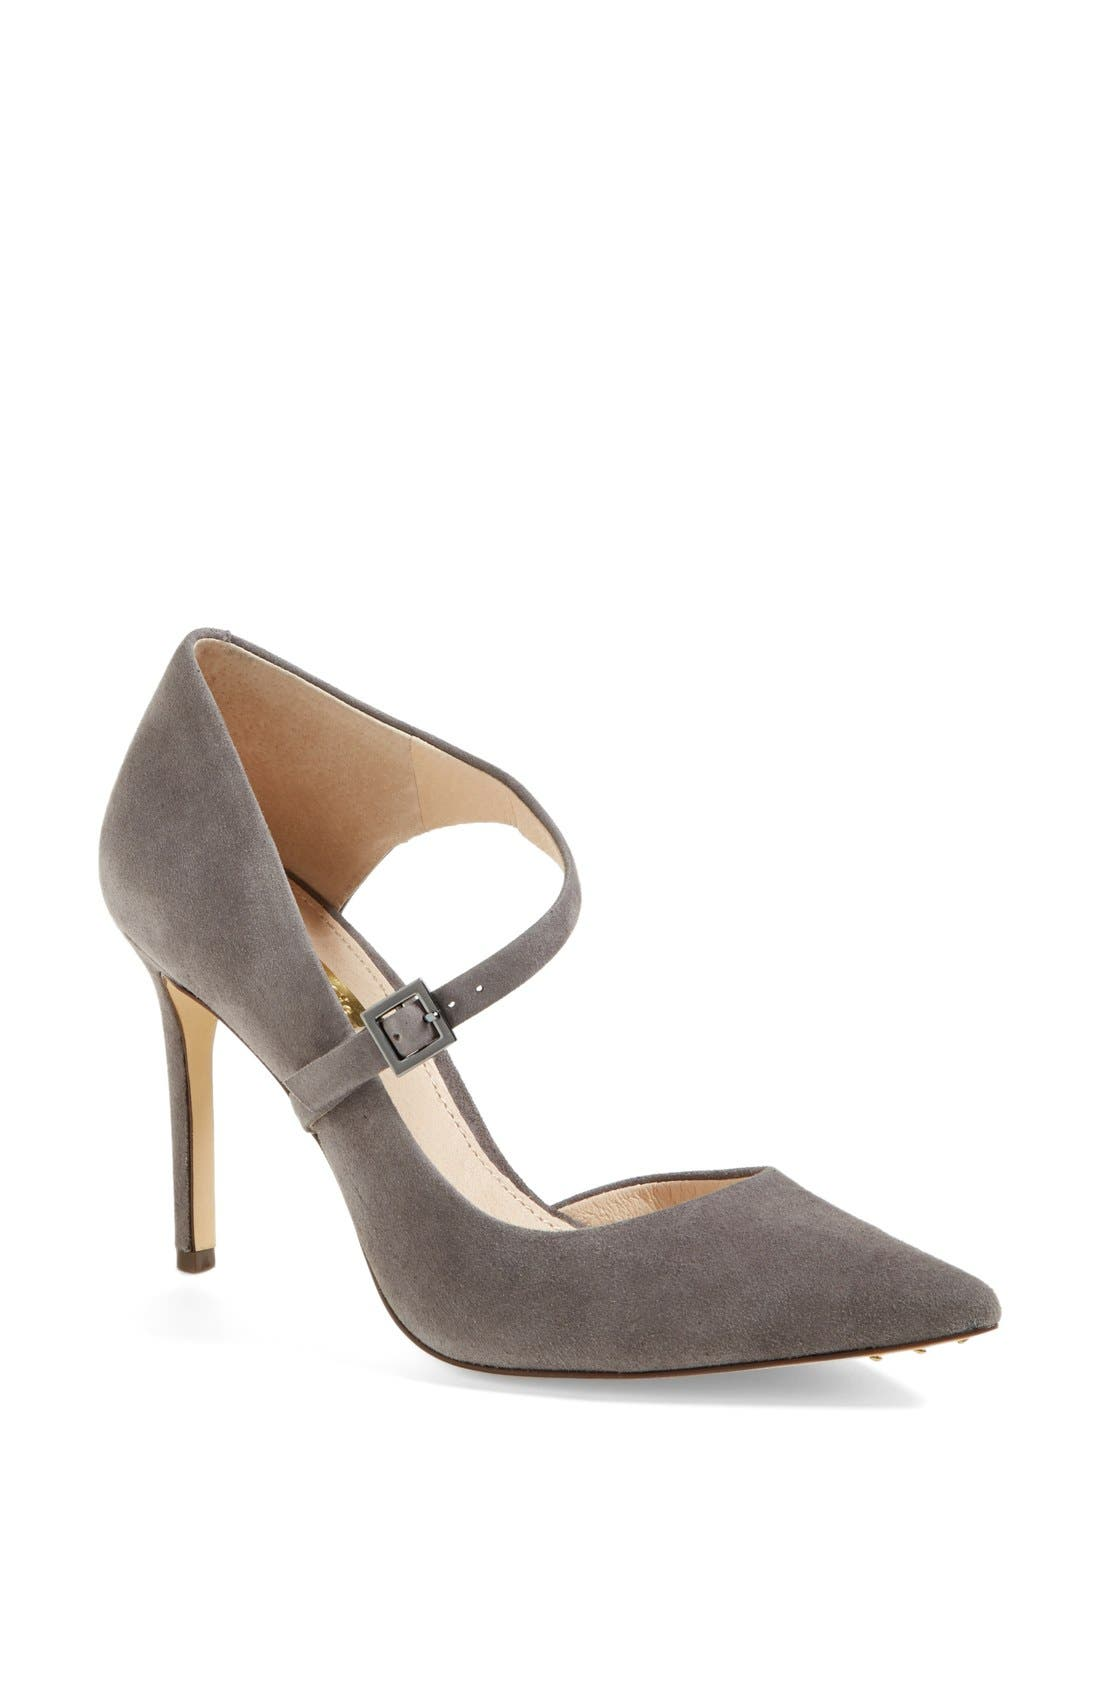 Alternate Image 1 Selected - Louise et Cie 'Inulya' Pump (Women)